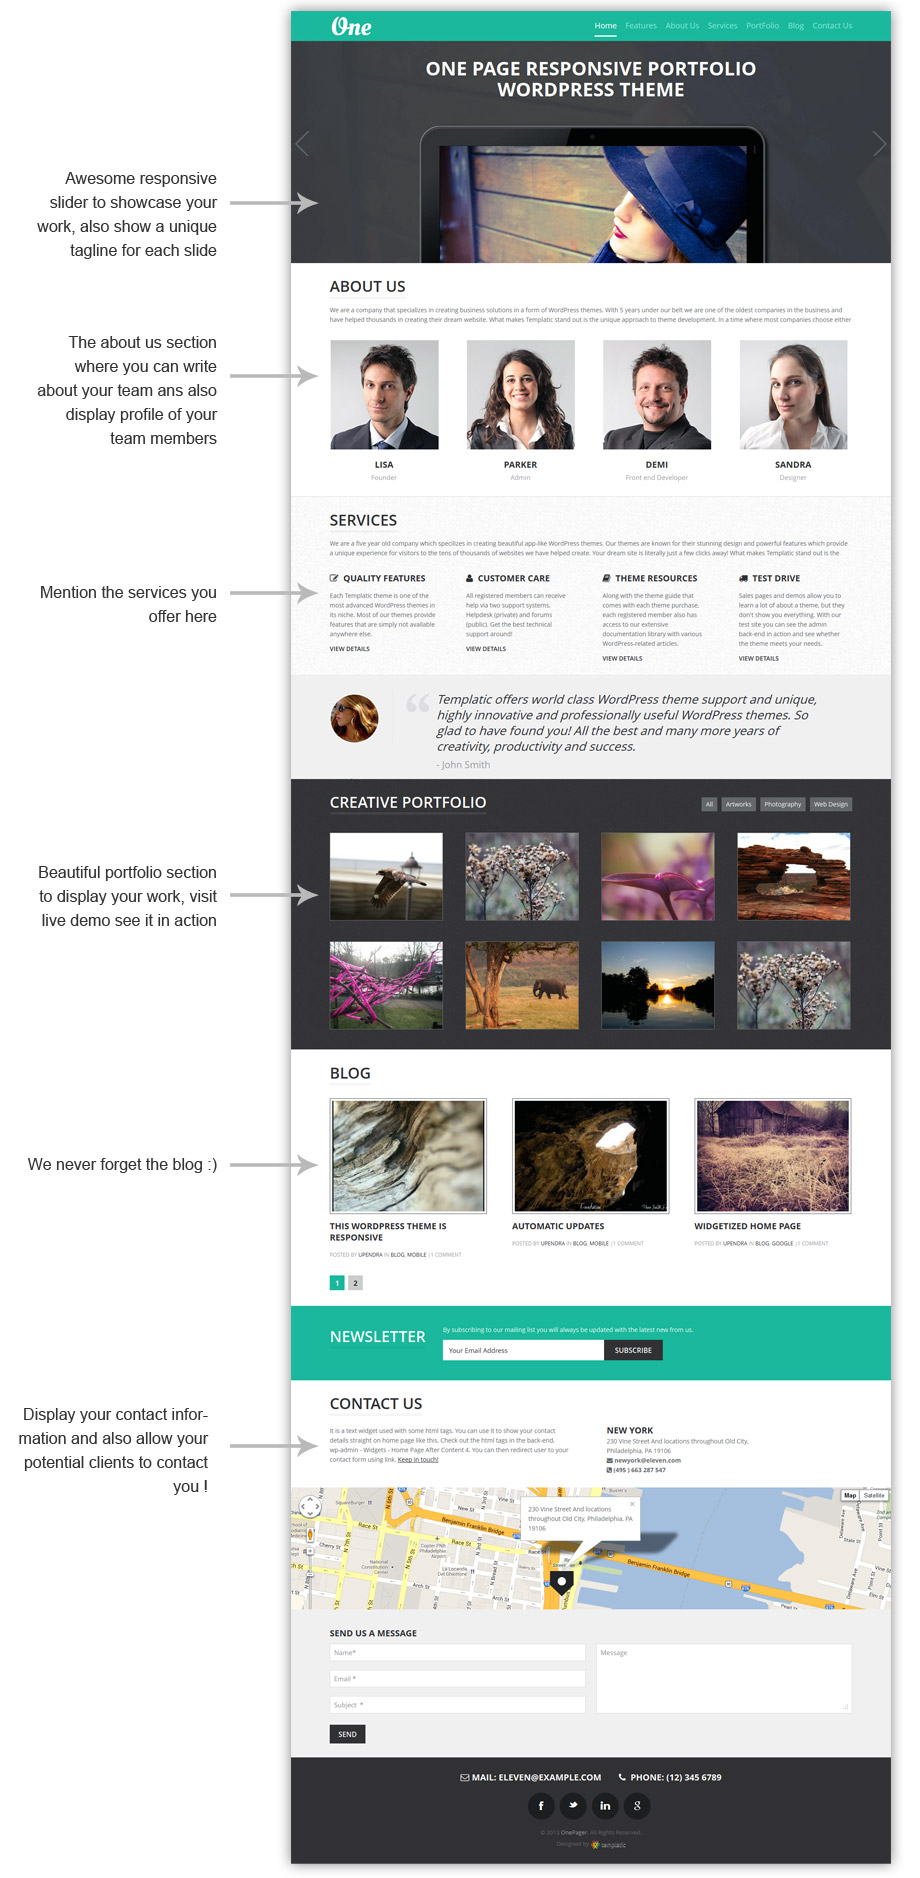 OnePager Responsive WP One Page Theme